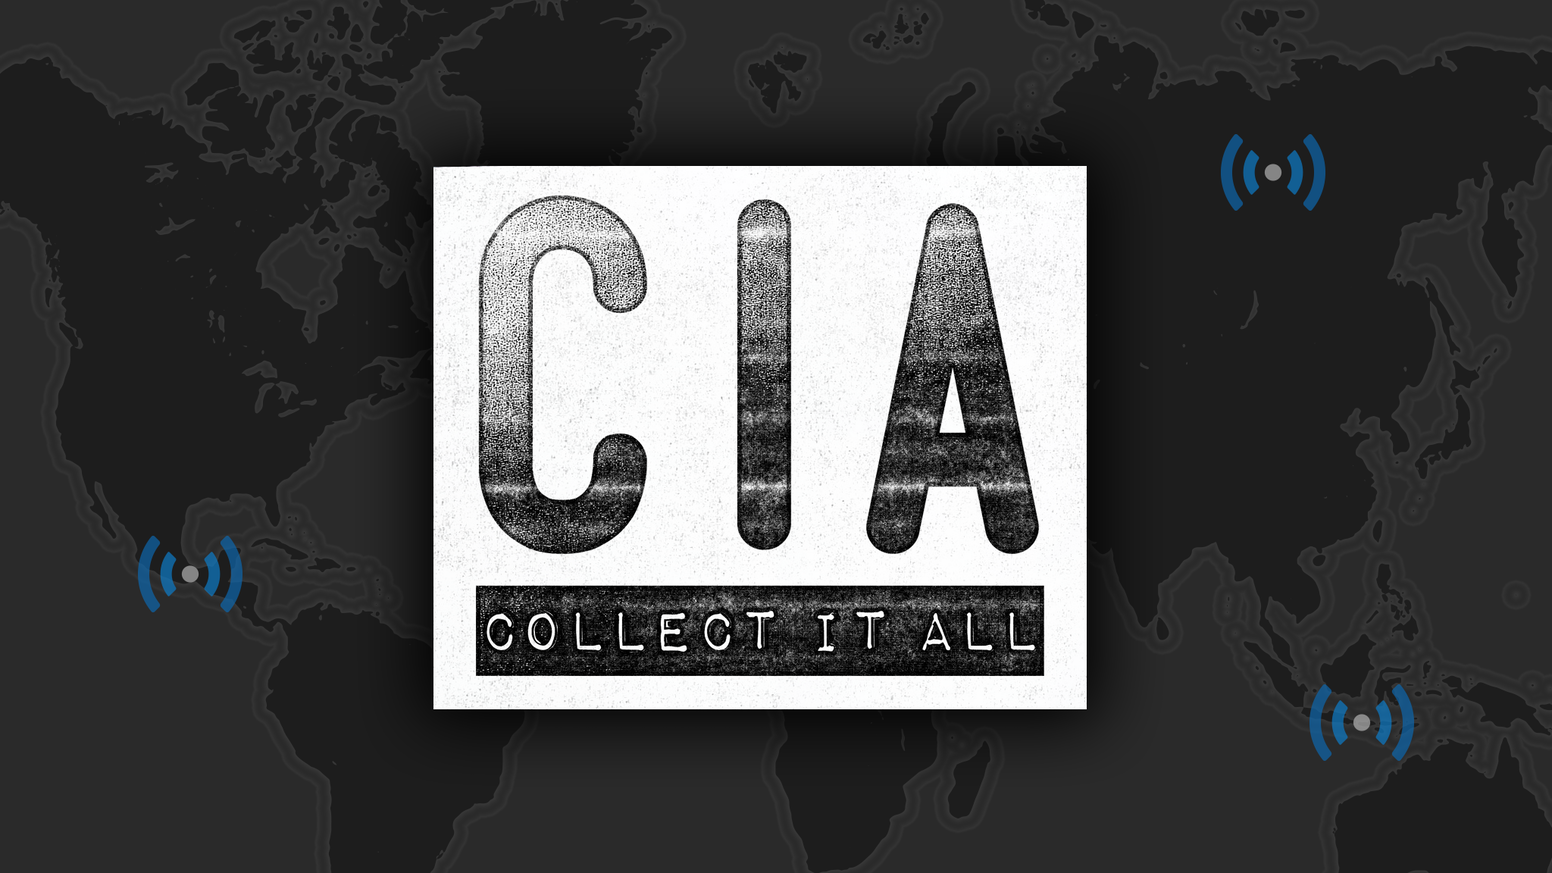 A competitive card game based on the CIA's declassified training game: Collection Deck.